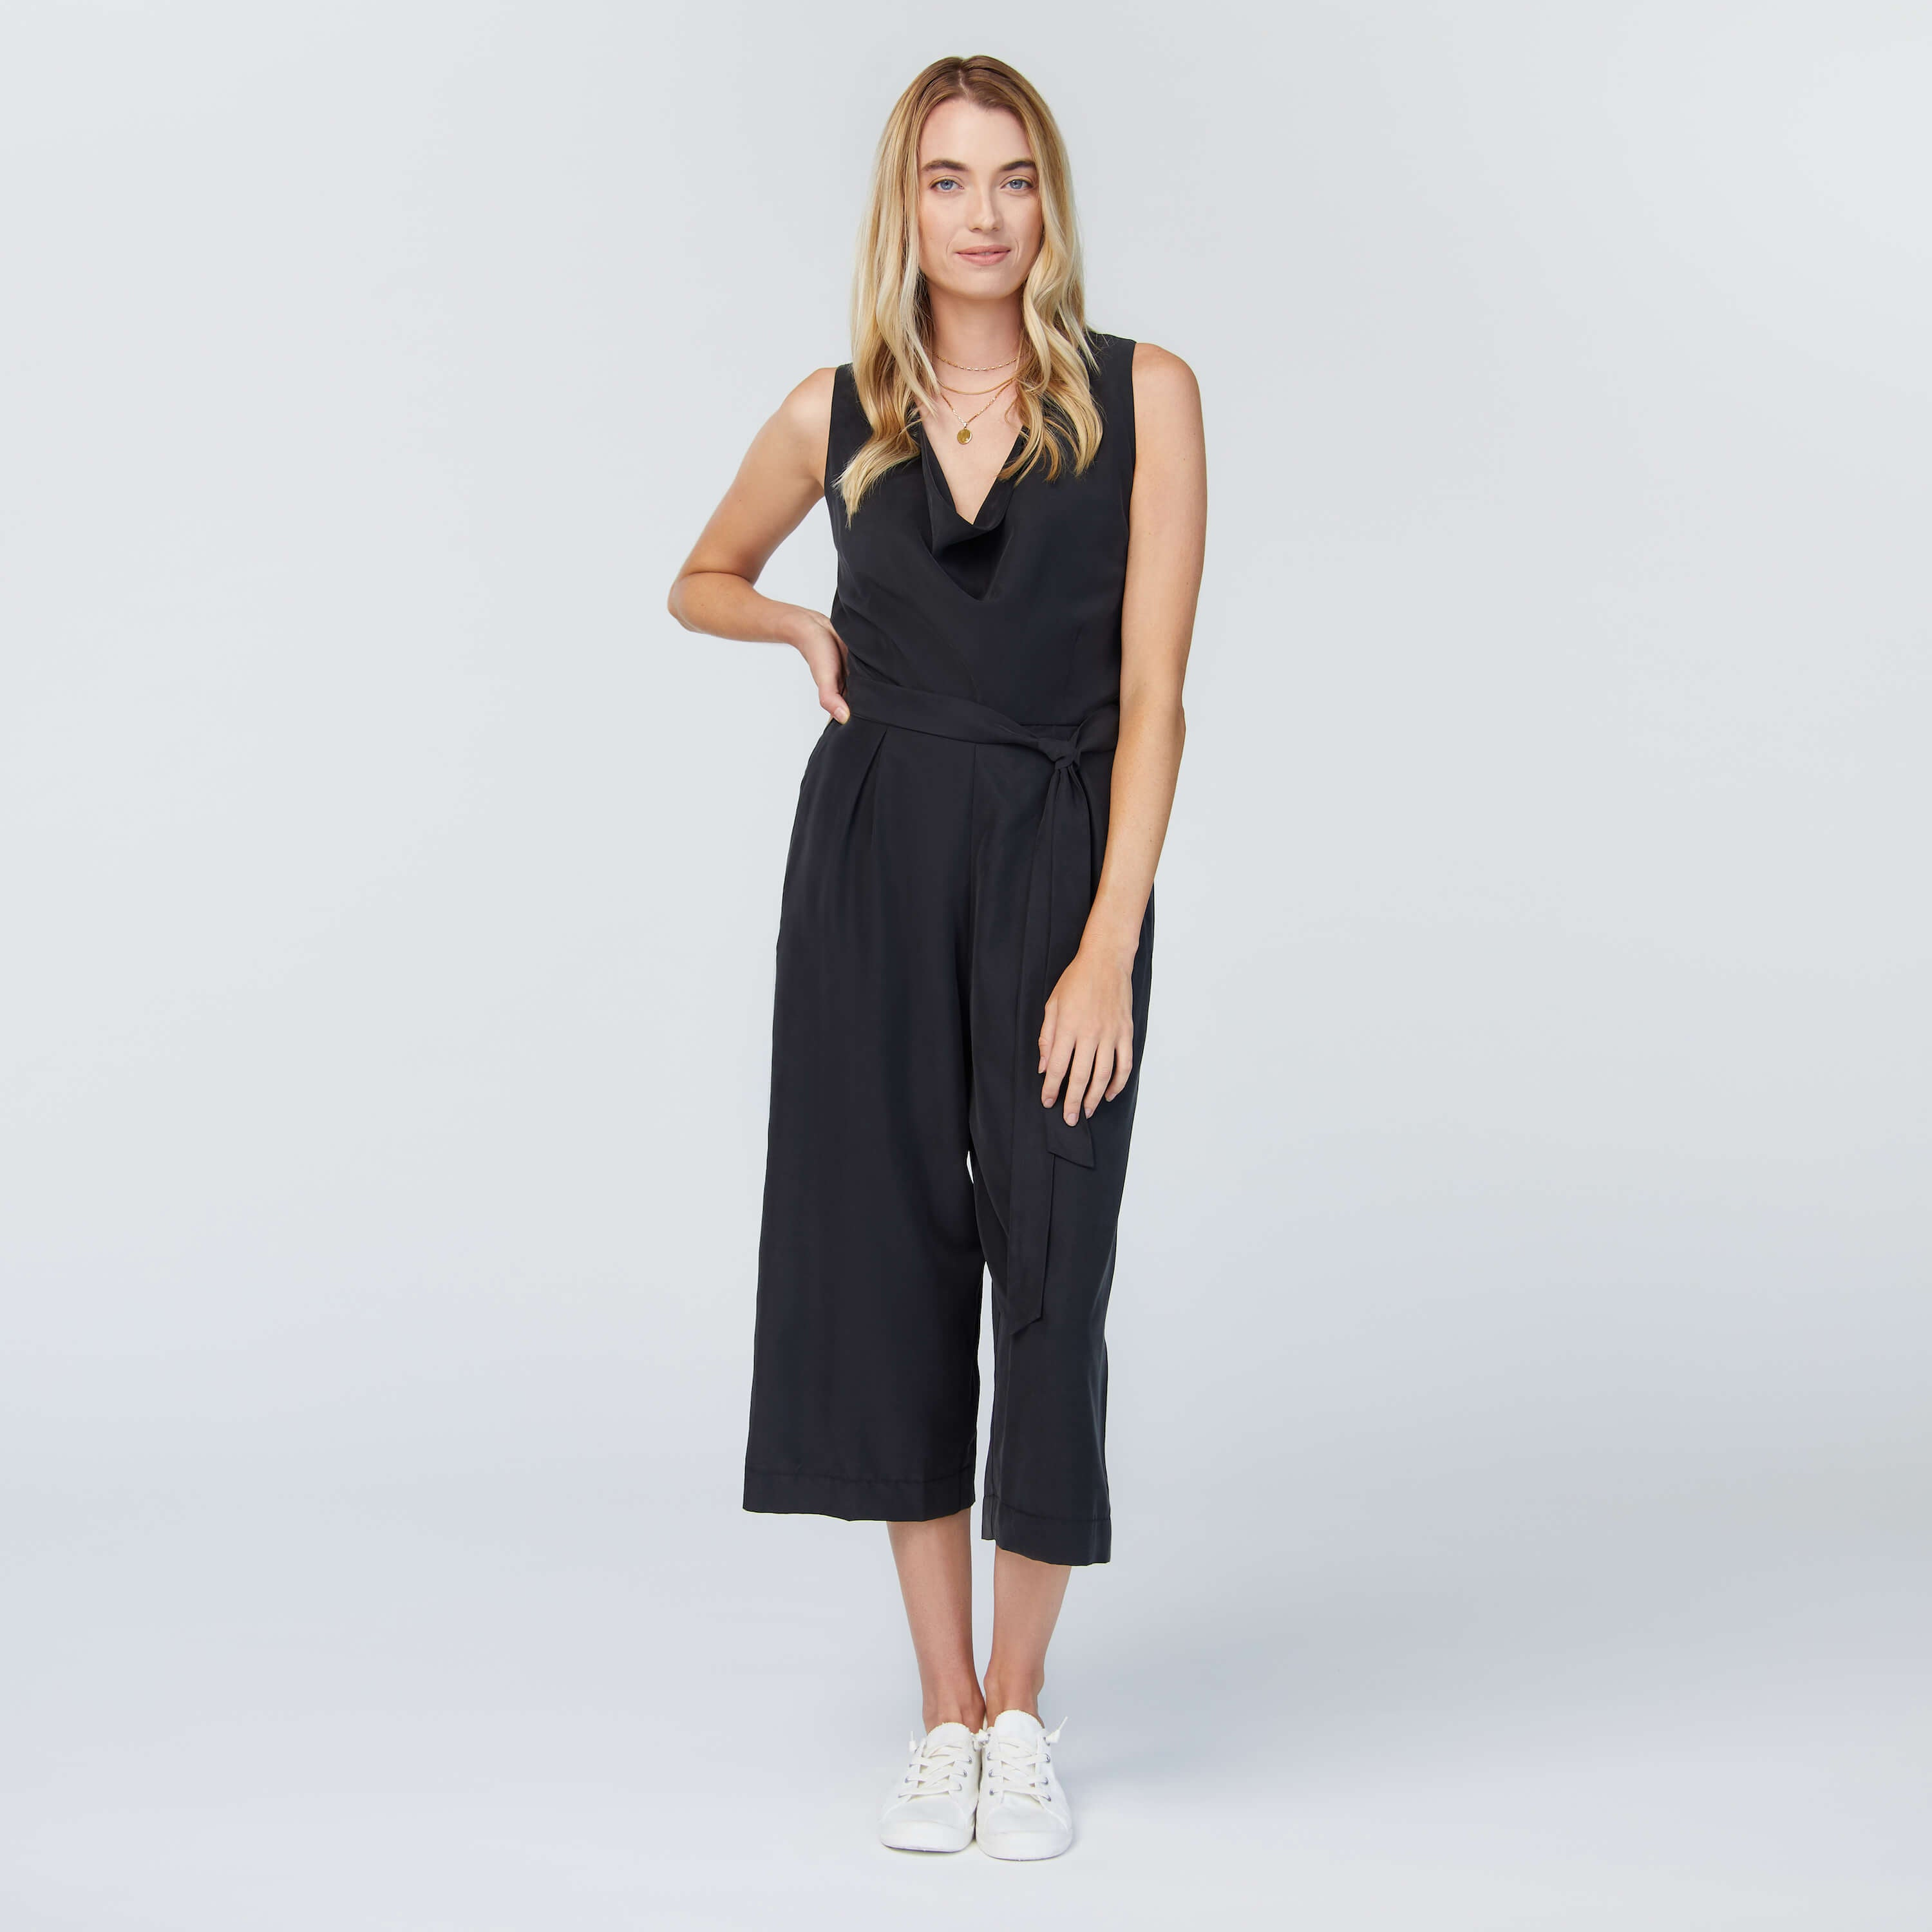 The Everywhere Jumpsuit in Black